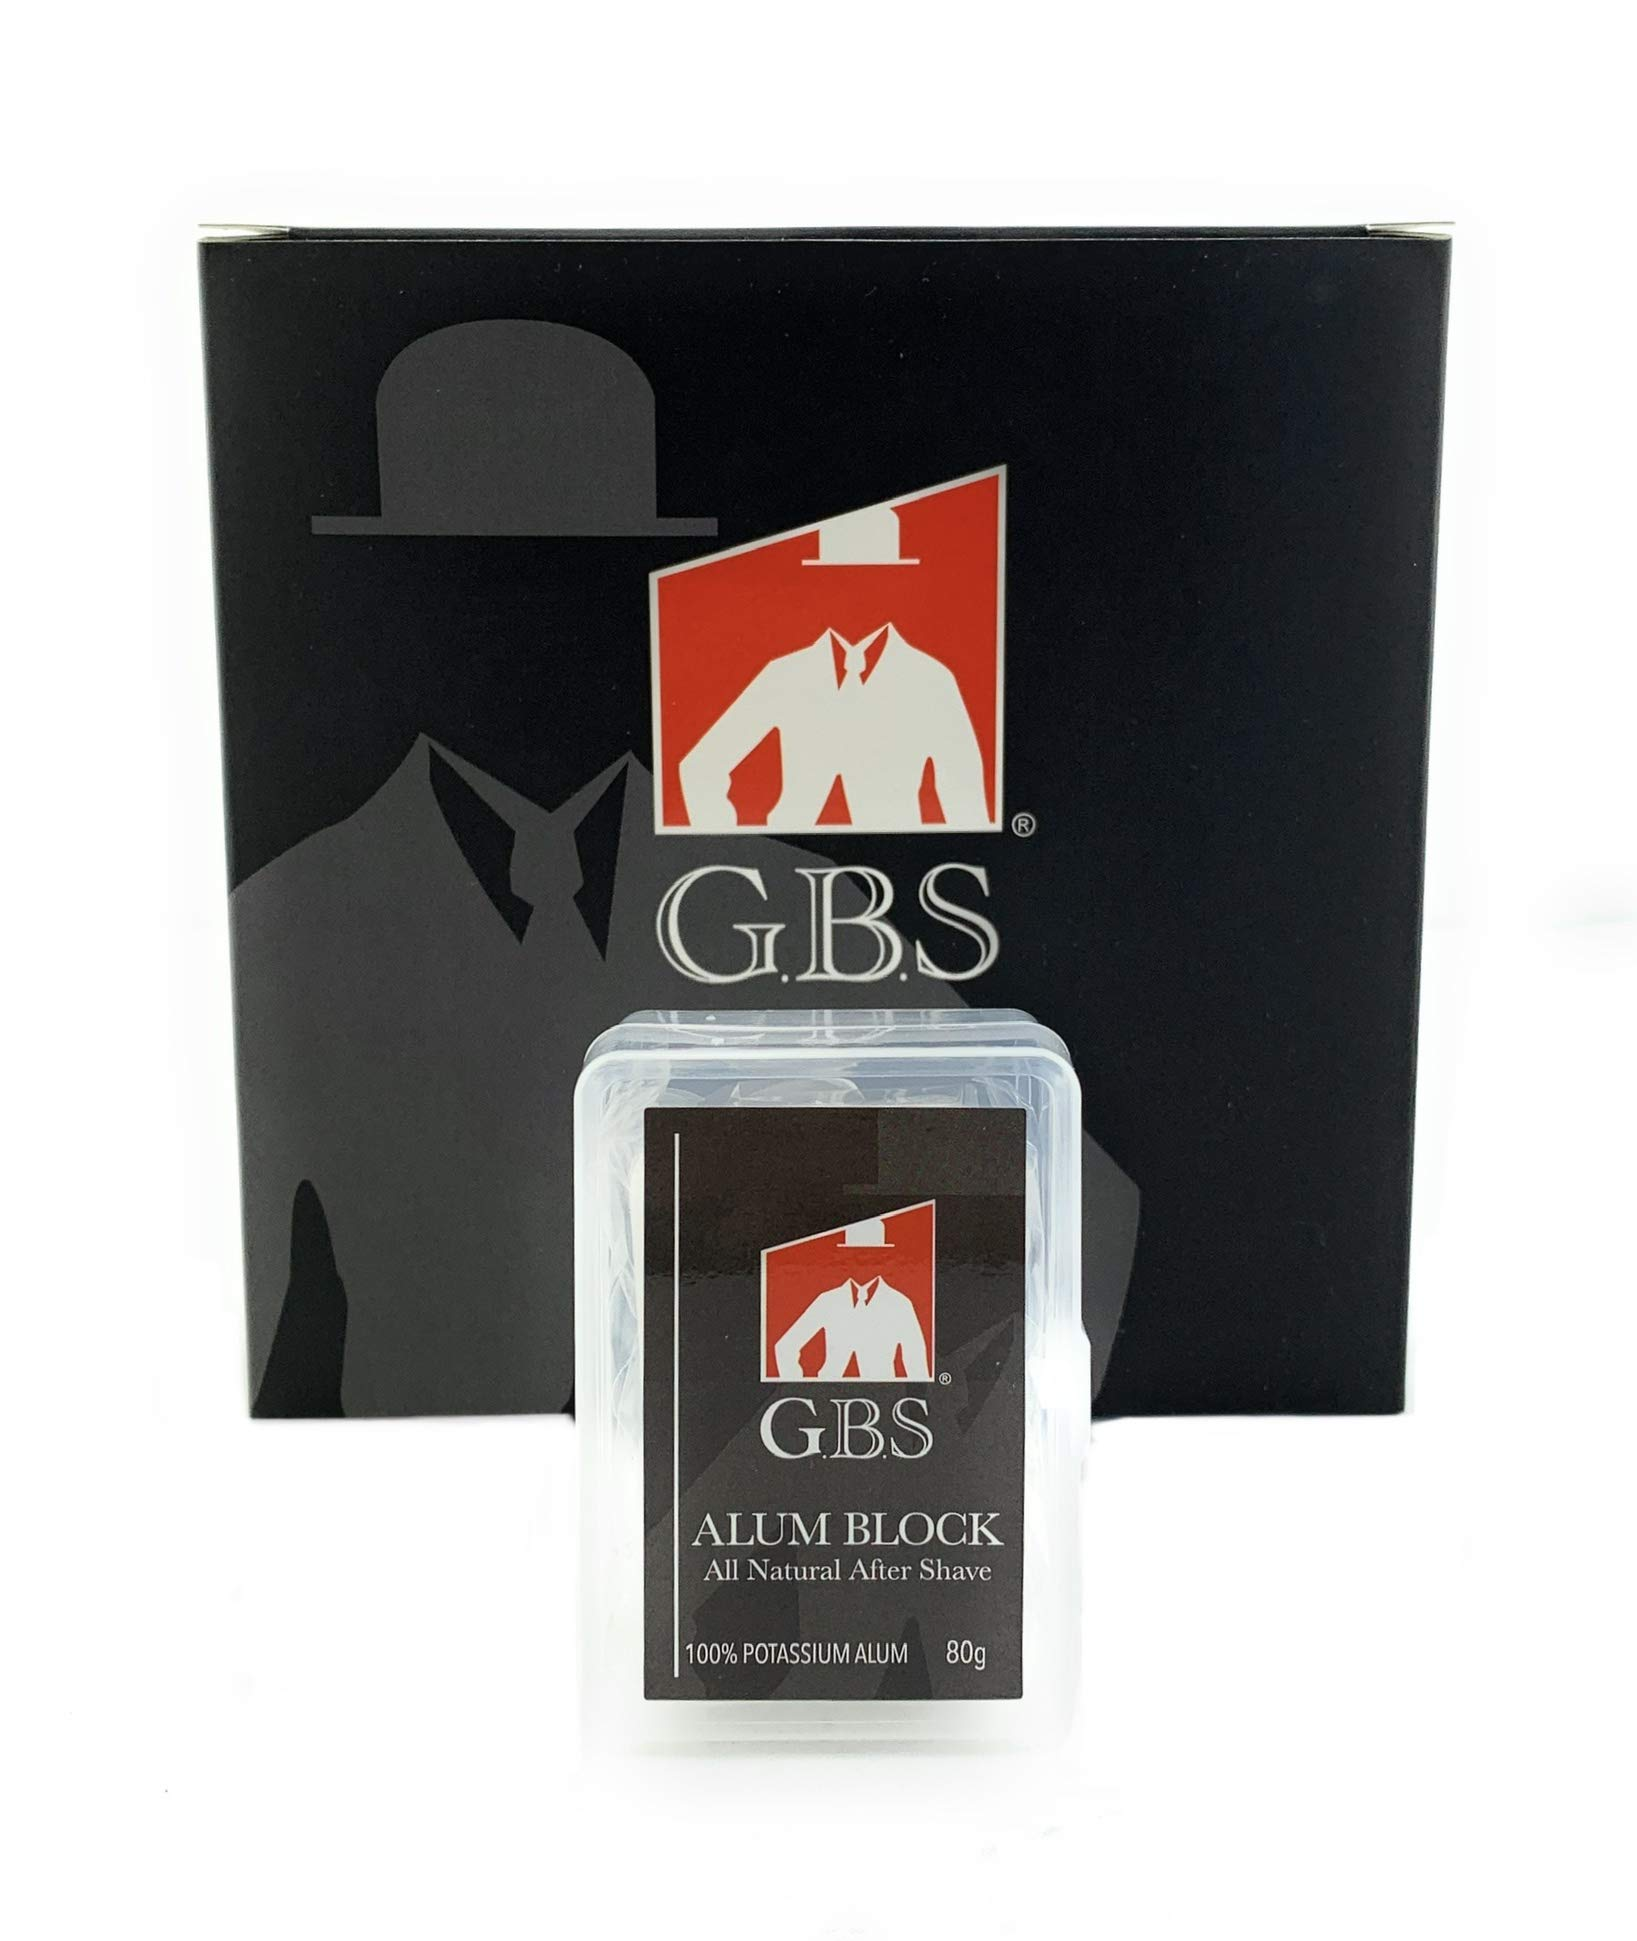 GBS Alum Block Stone Large Alum Rock in Storage Case Soothing Aftershave Astringent to Close Pores - Alum Stone Helps Stop Bleeding from Nicks and Cuts- (Alum With Case)